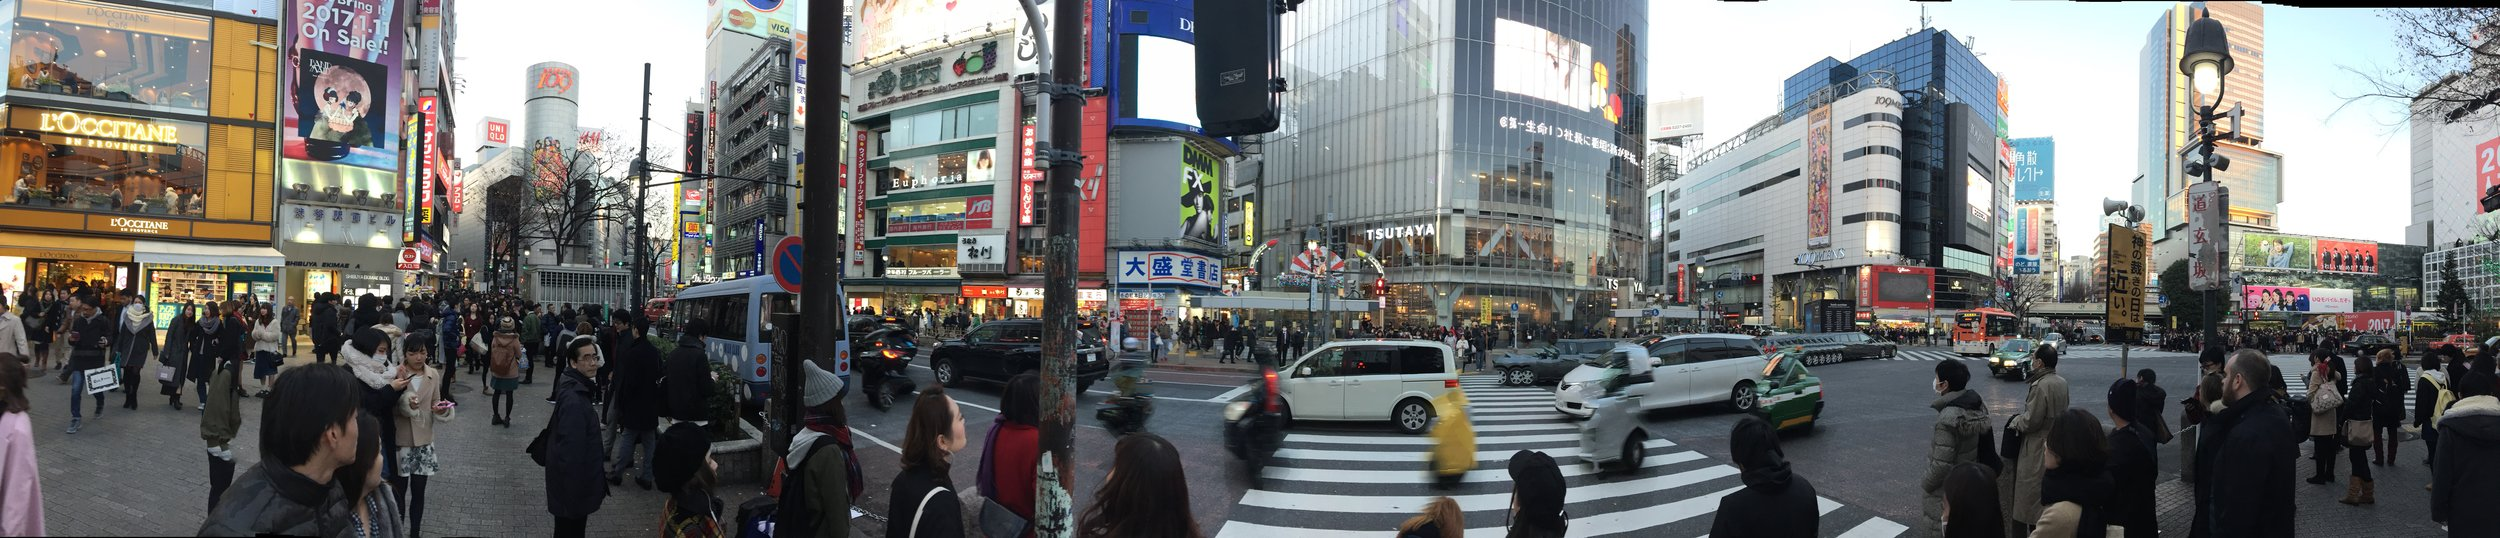 Shibuya Crossing from the ground.